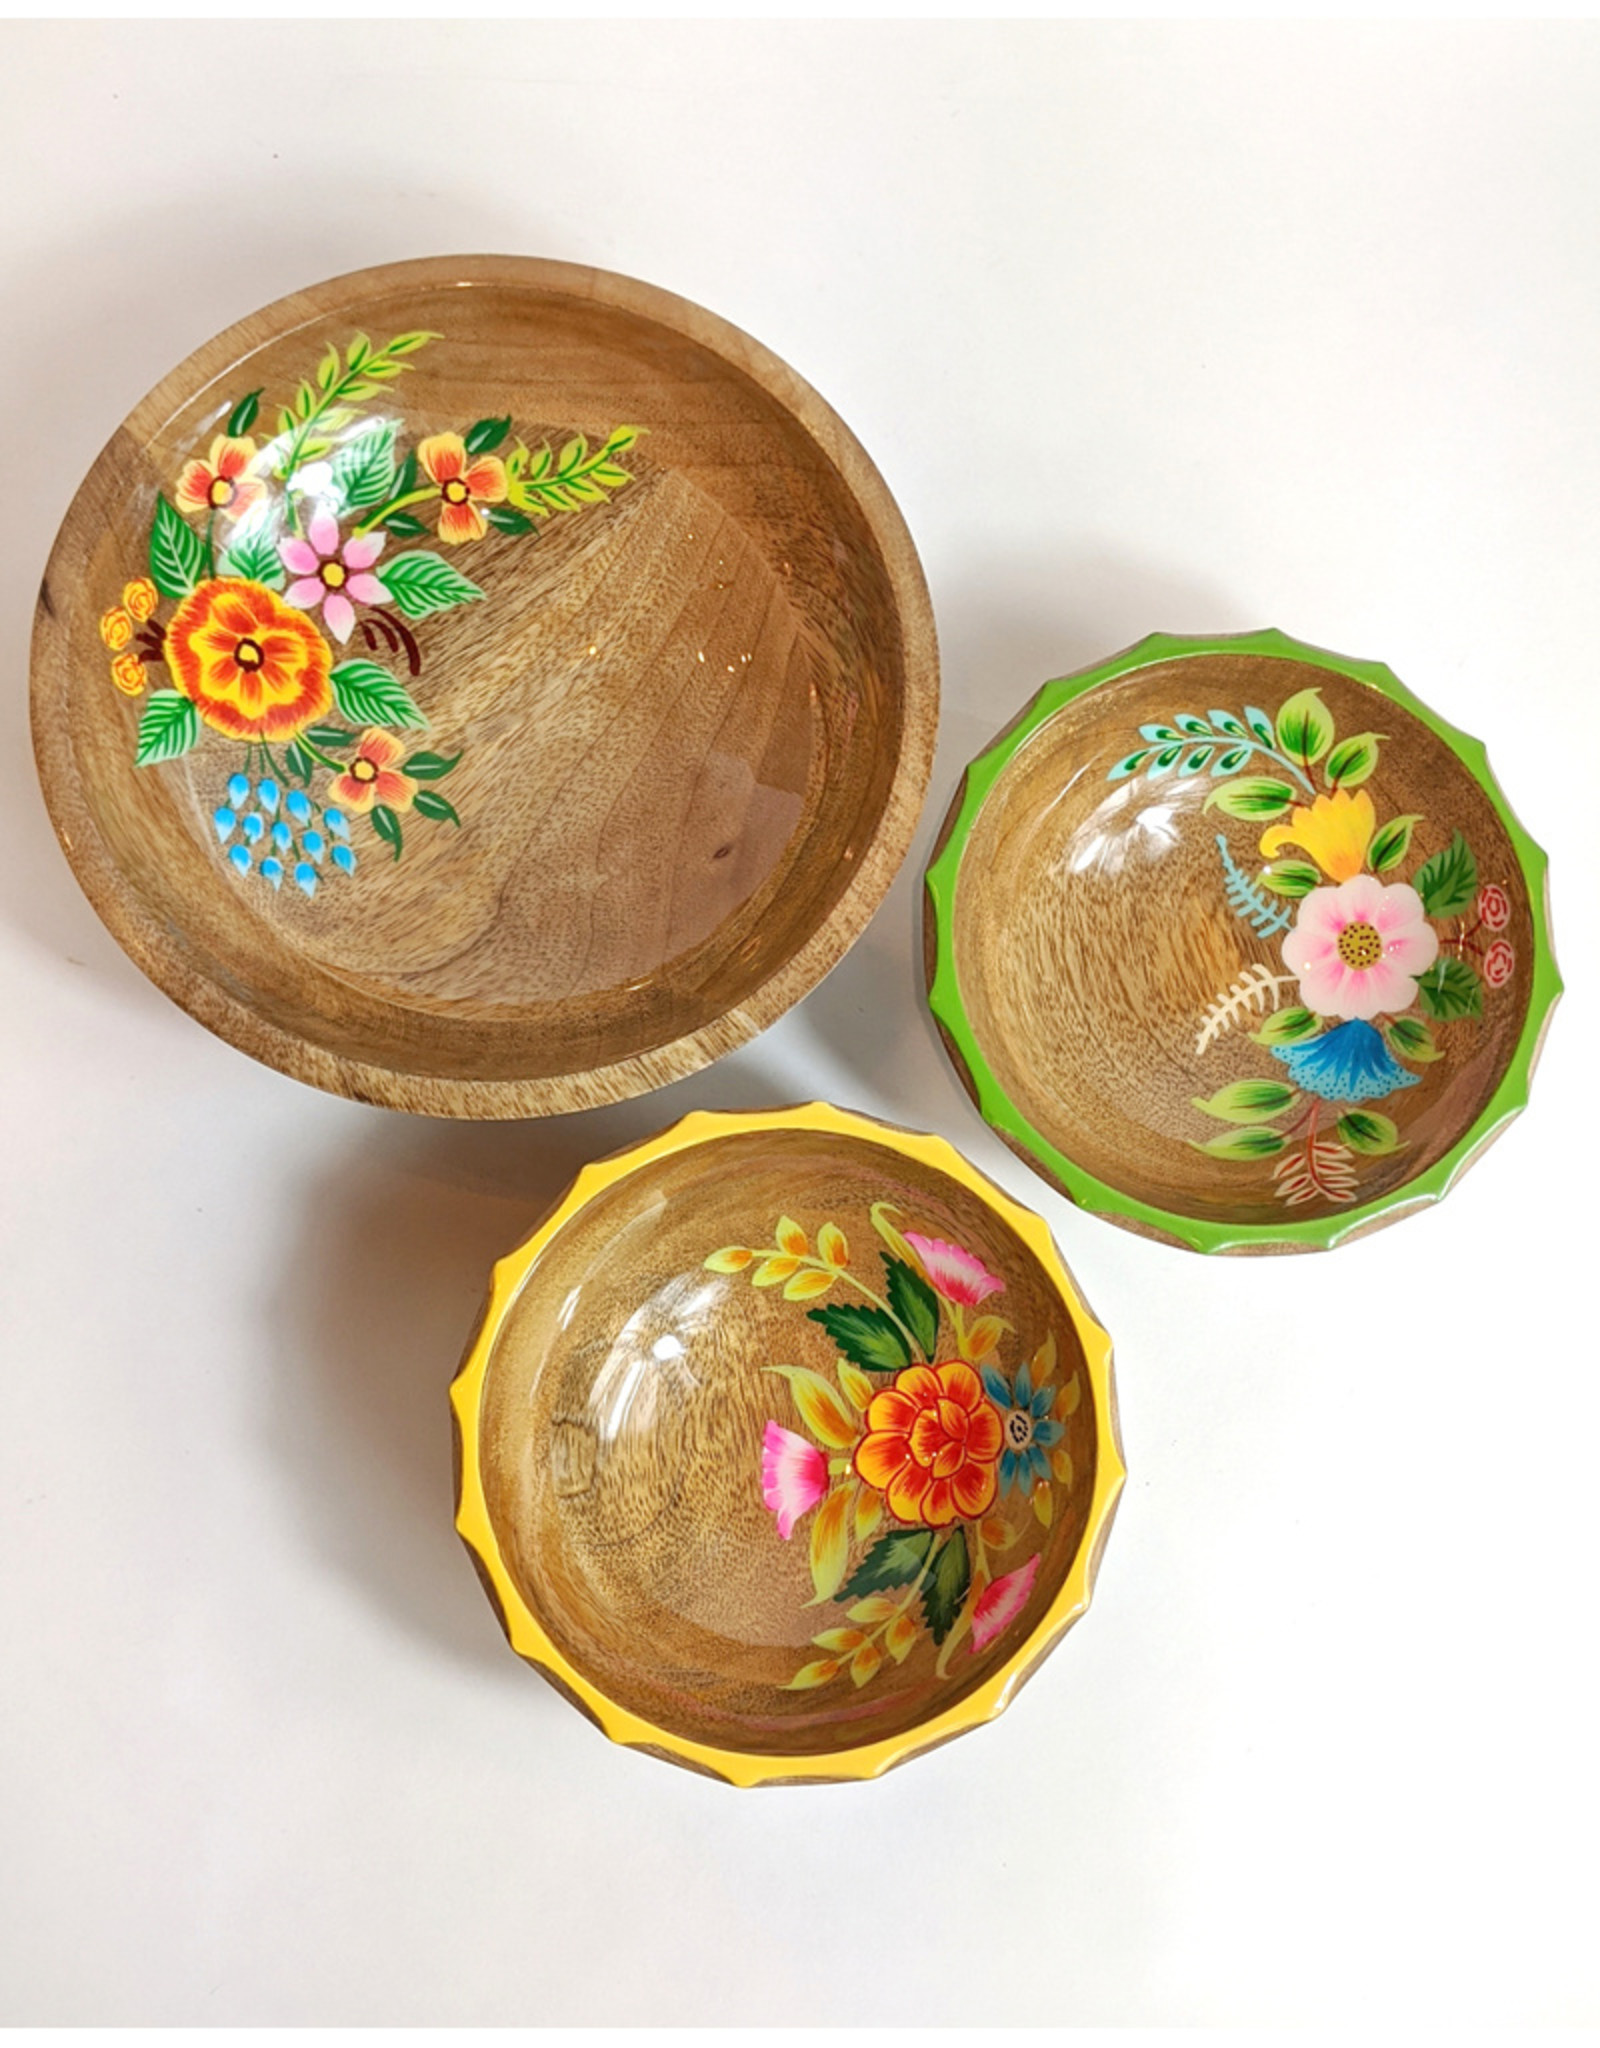 One Hundred 80 Degrees Hand Painted Floral Bowl 8""